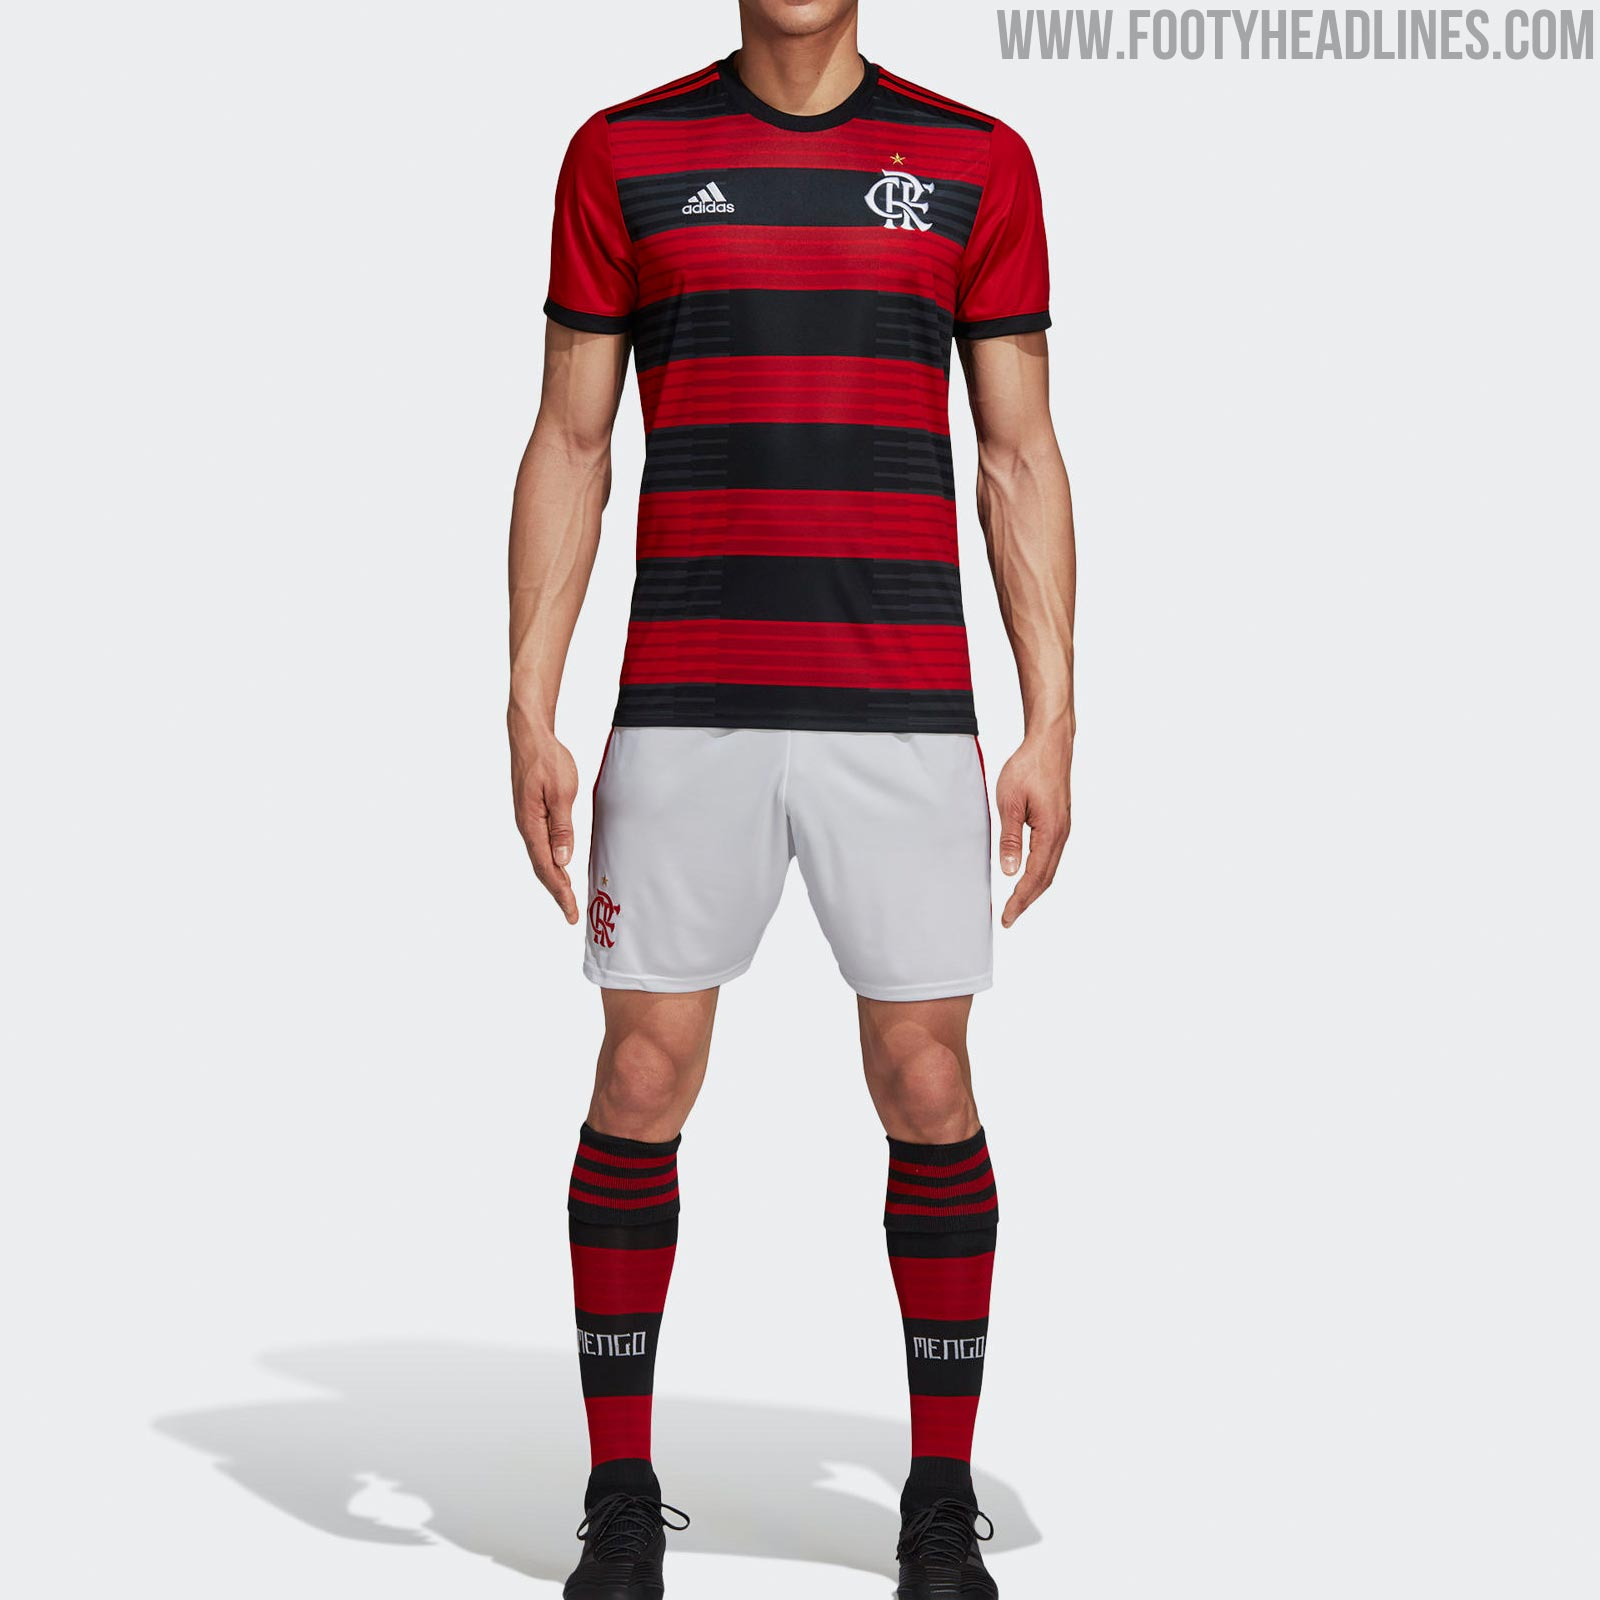 flamengo-18-19-home-kit-5.jpg